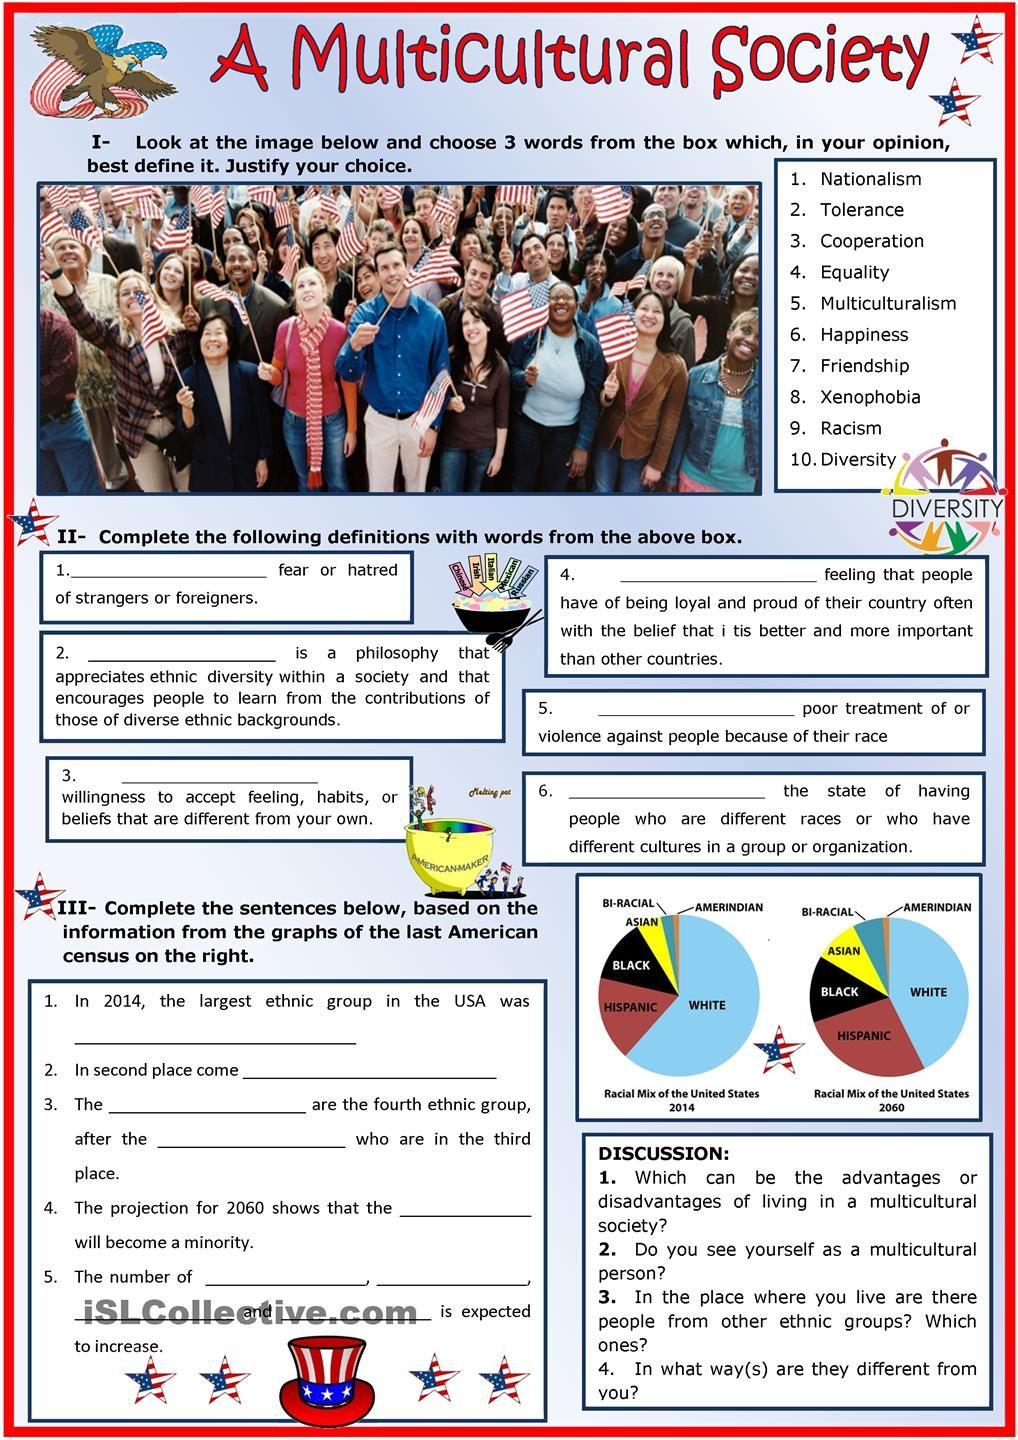 a multicultural society esl printable worksheet of the day on a multicultural society esl printable worksheet of the day on 27 2015 by